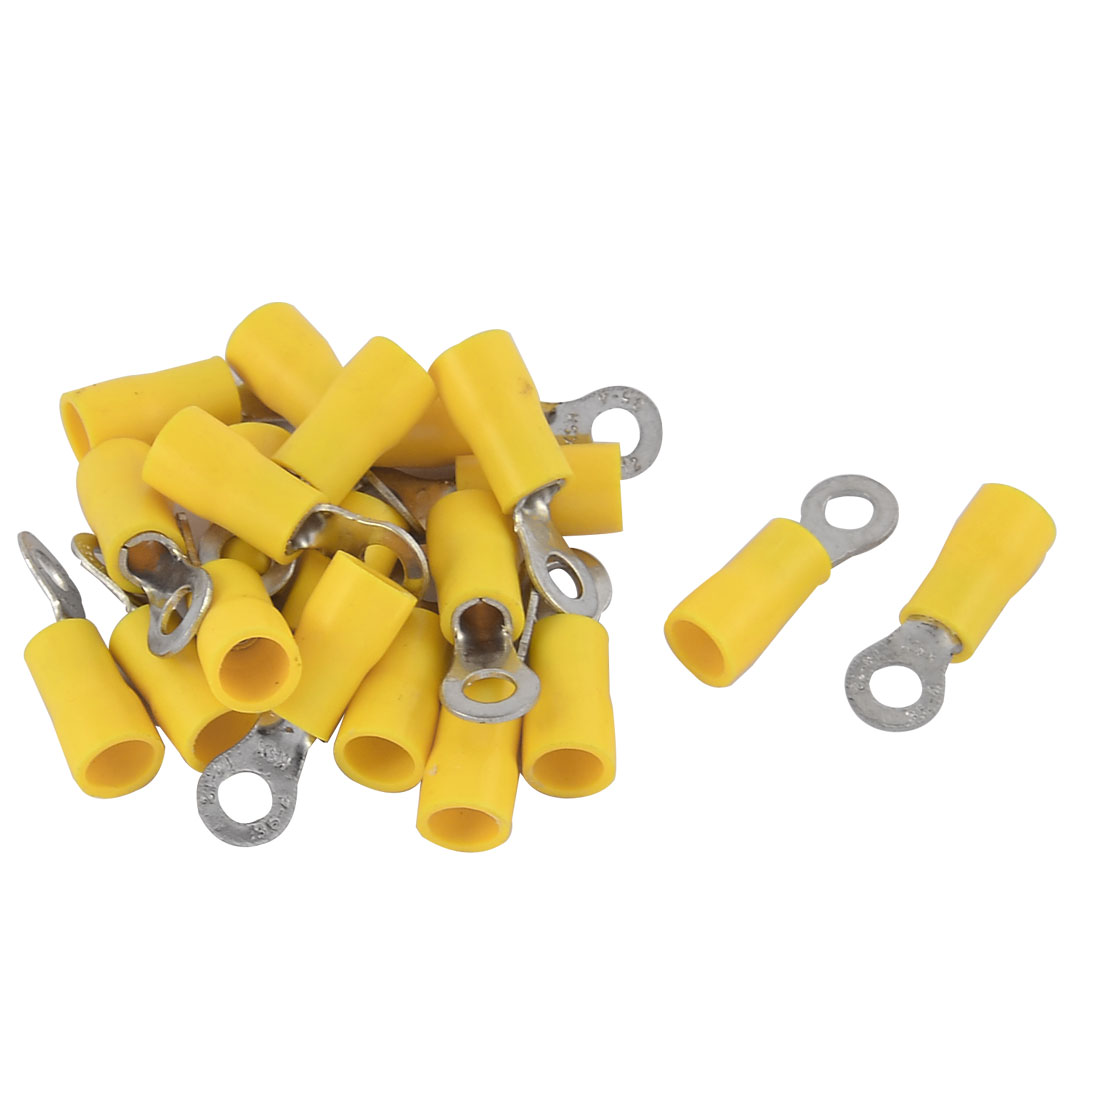 20pcs 3.5-4S Gauge Pre-insulated Ring Terminals Connector Yelllow